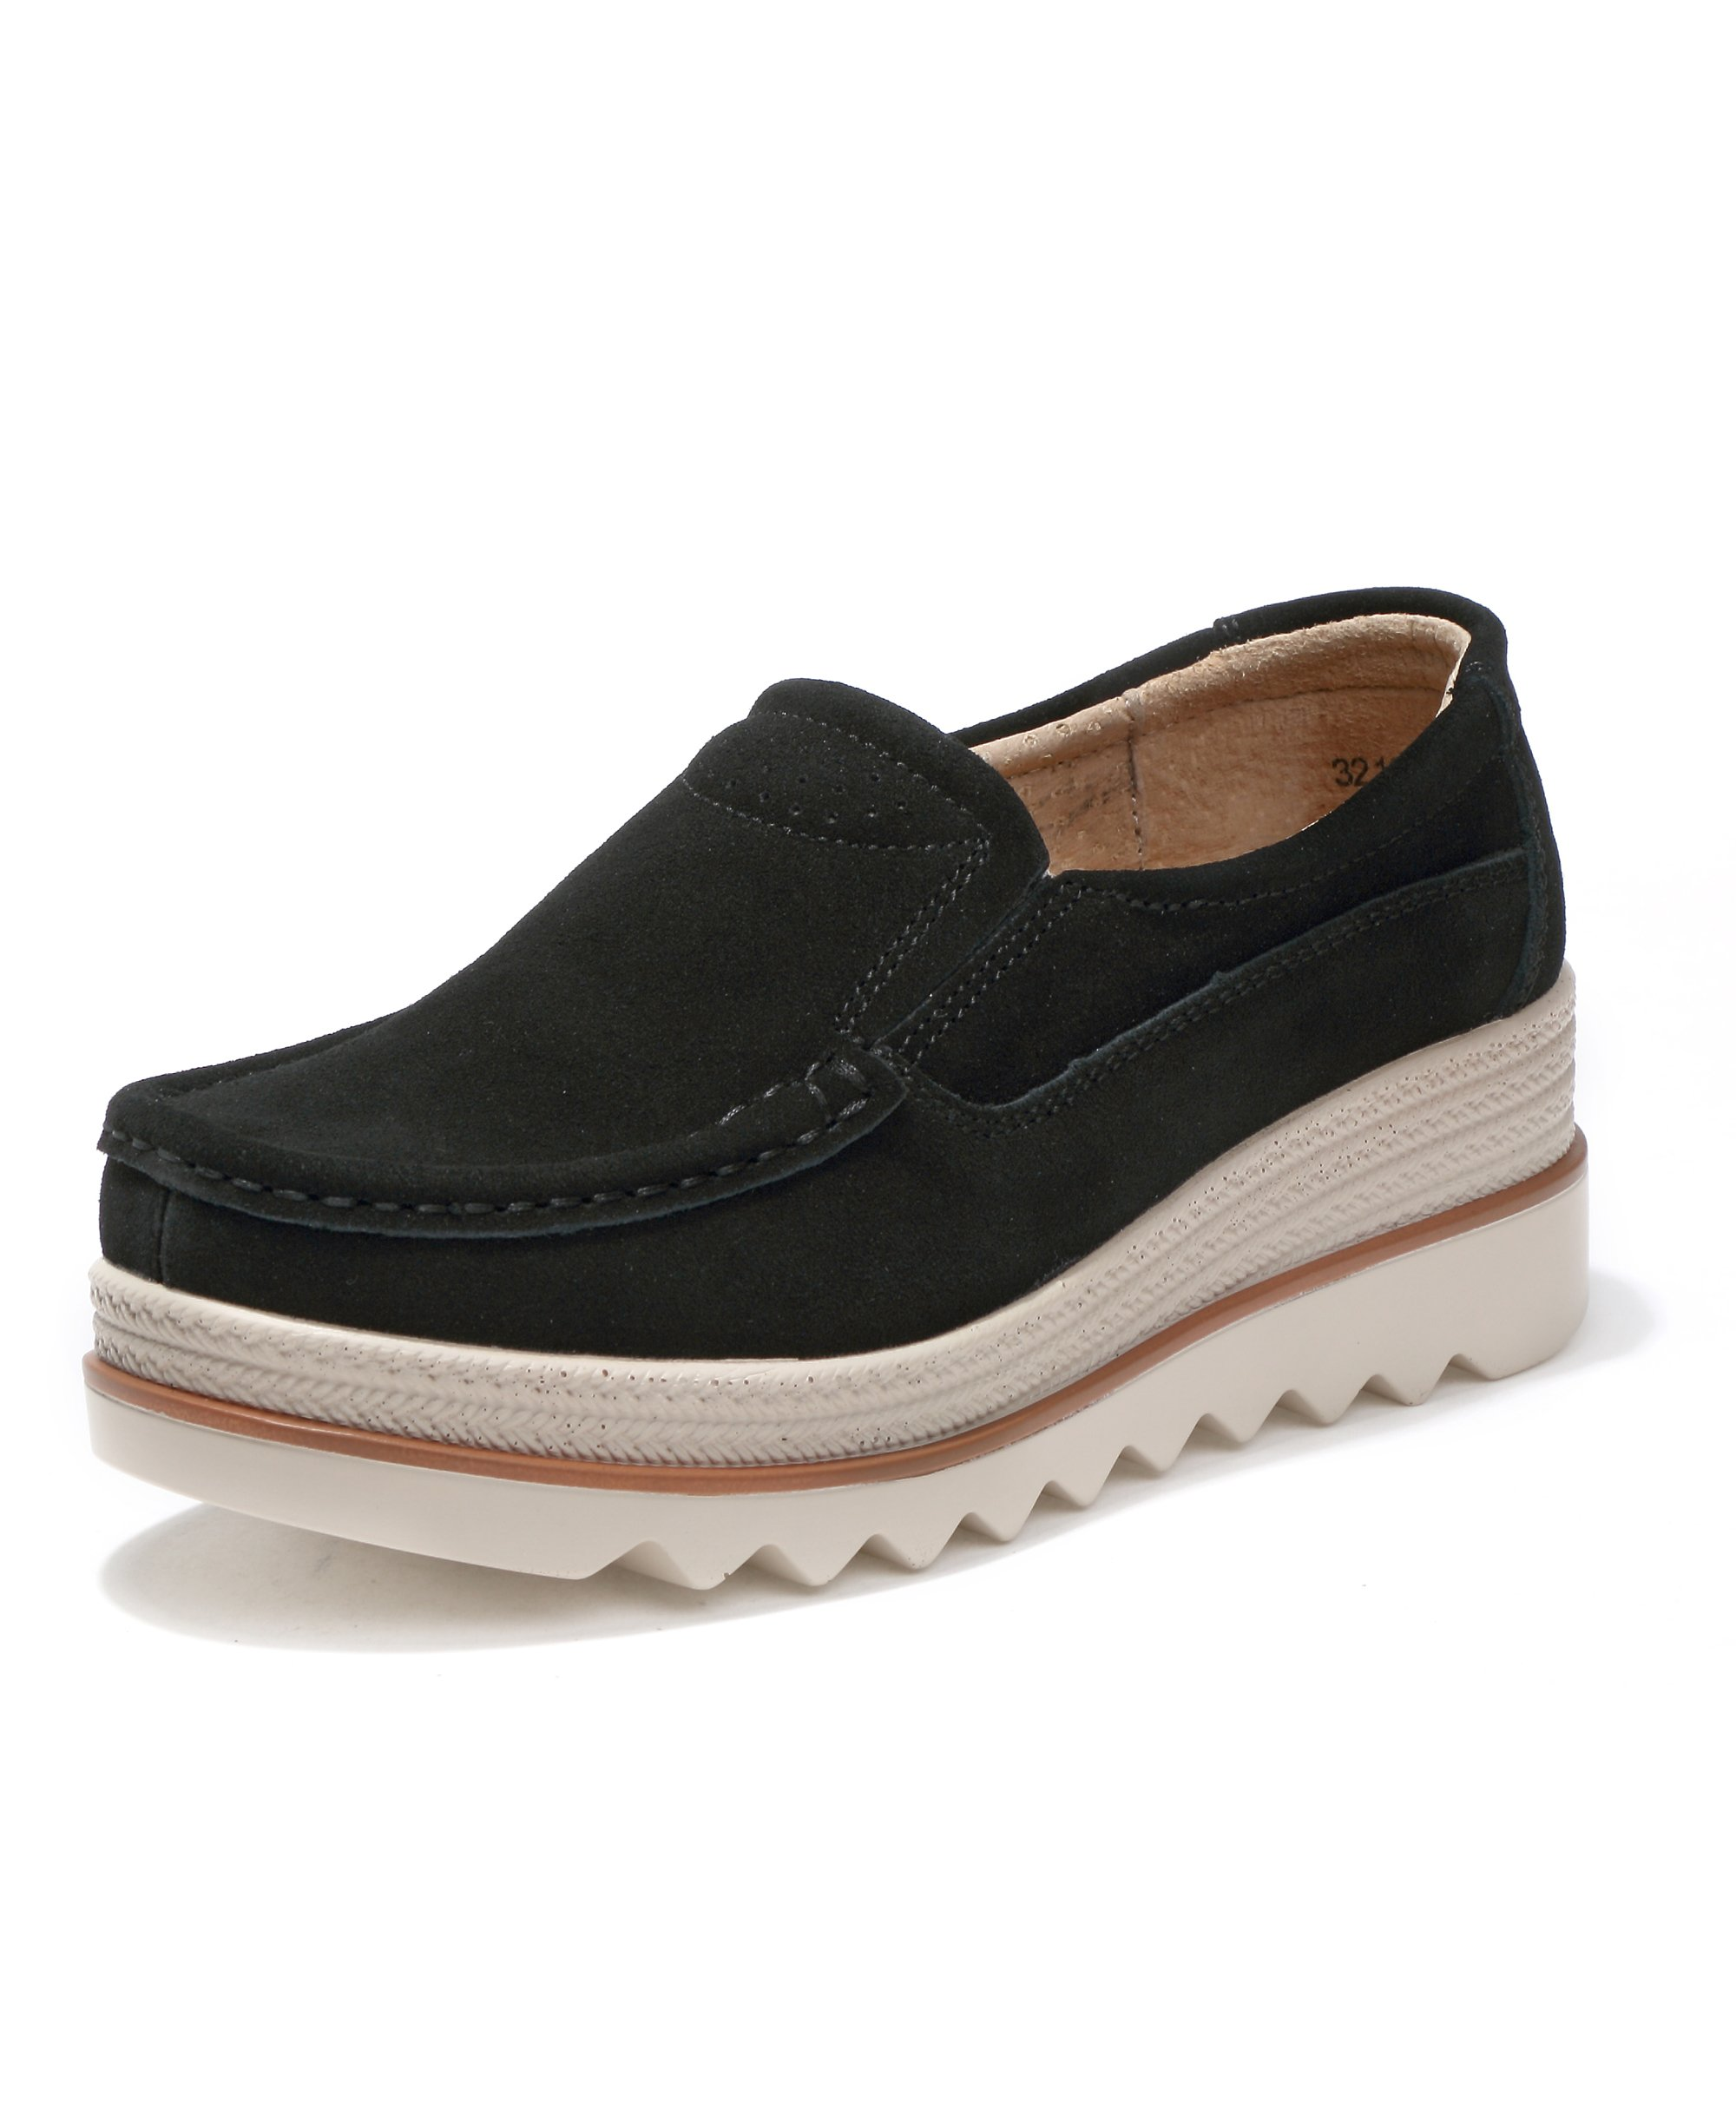 Rainrop Women Platform Slip On Loafers Shoes Comfort Suede Moccasins Fashion Casual Wedge Sneakers Black 42